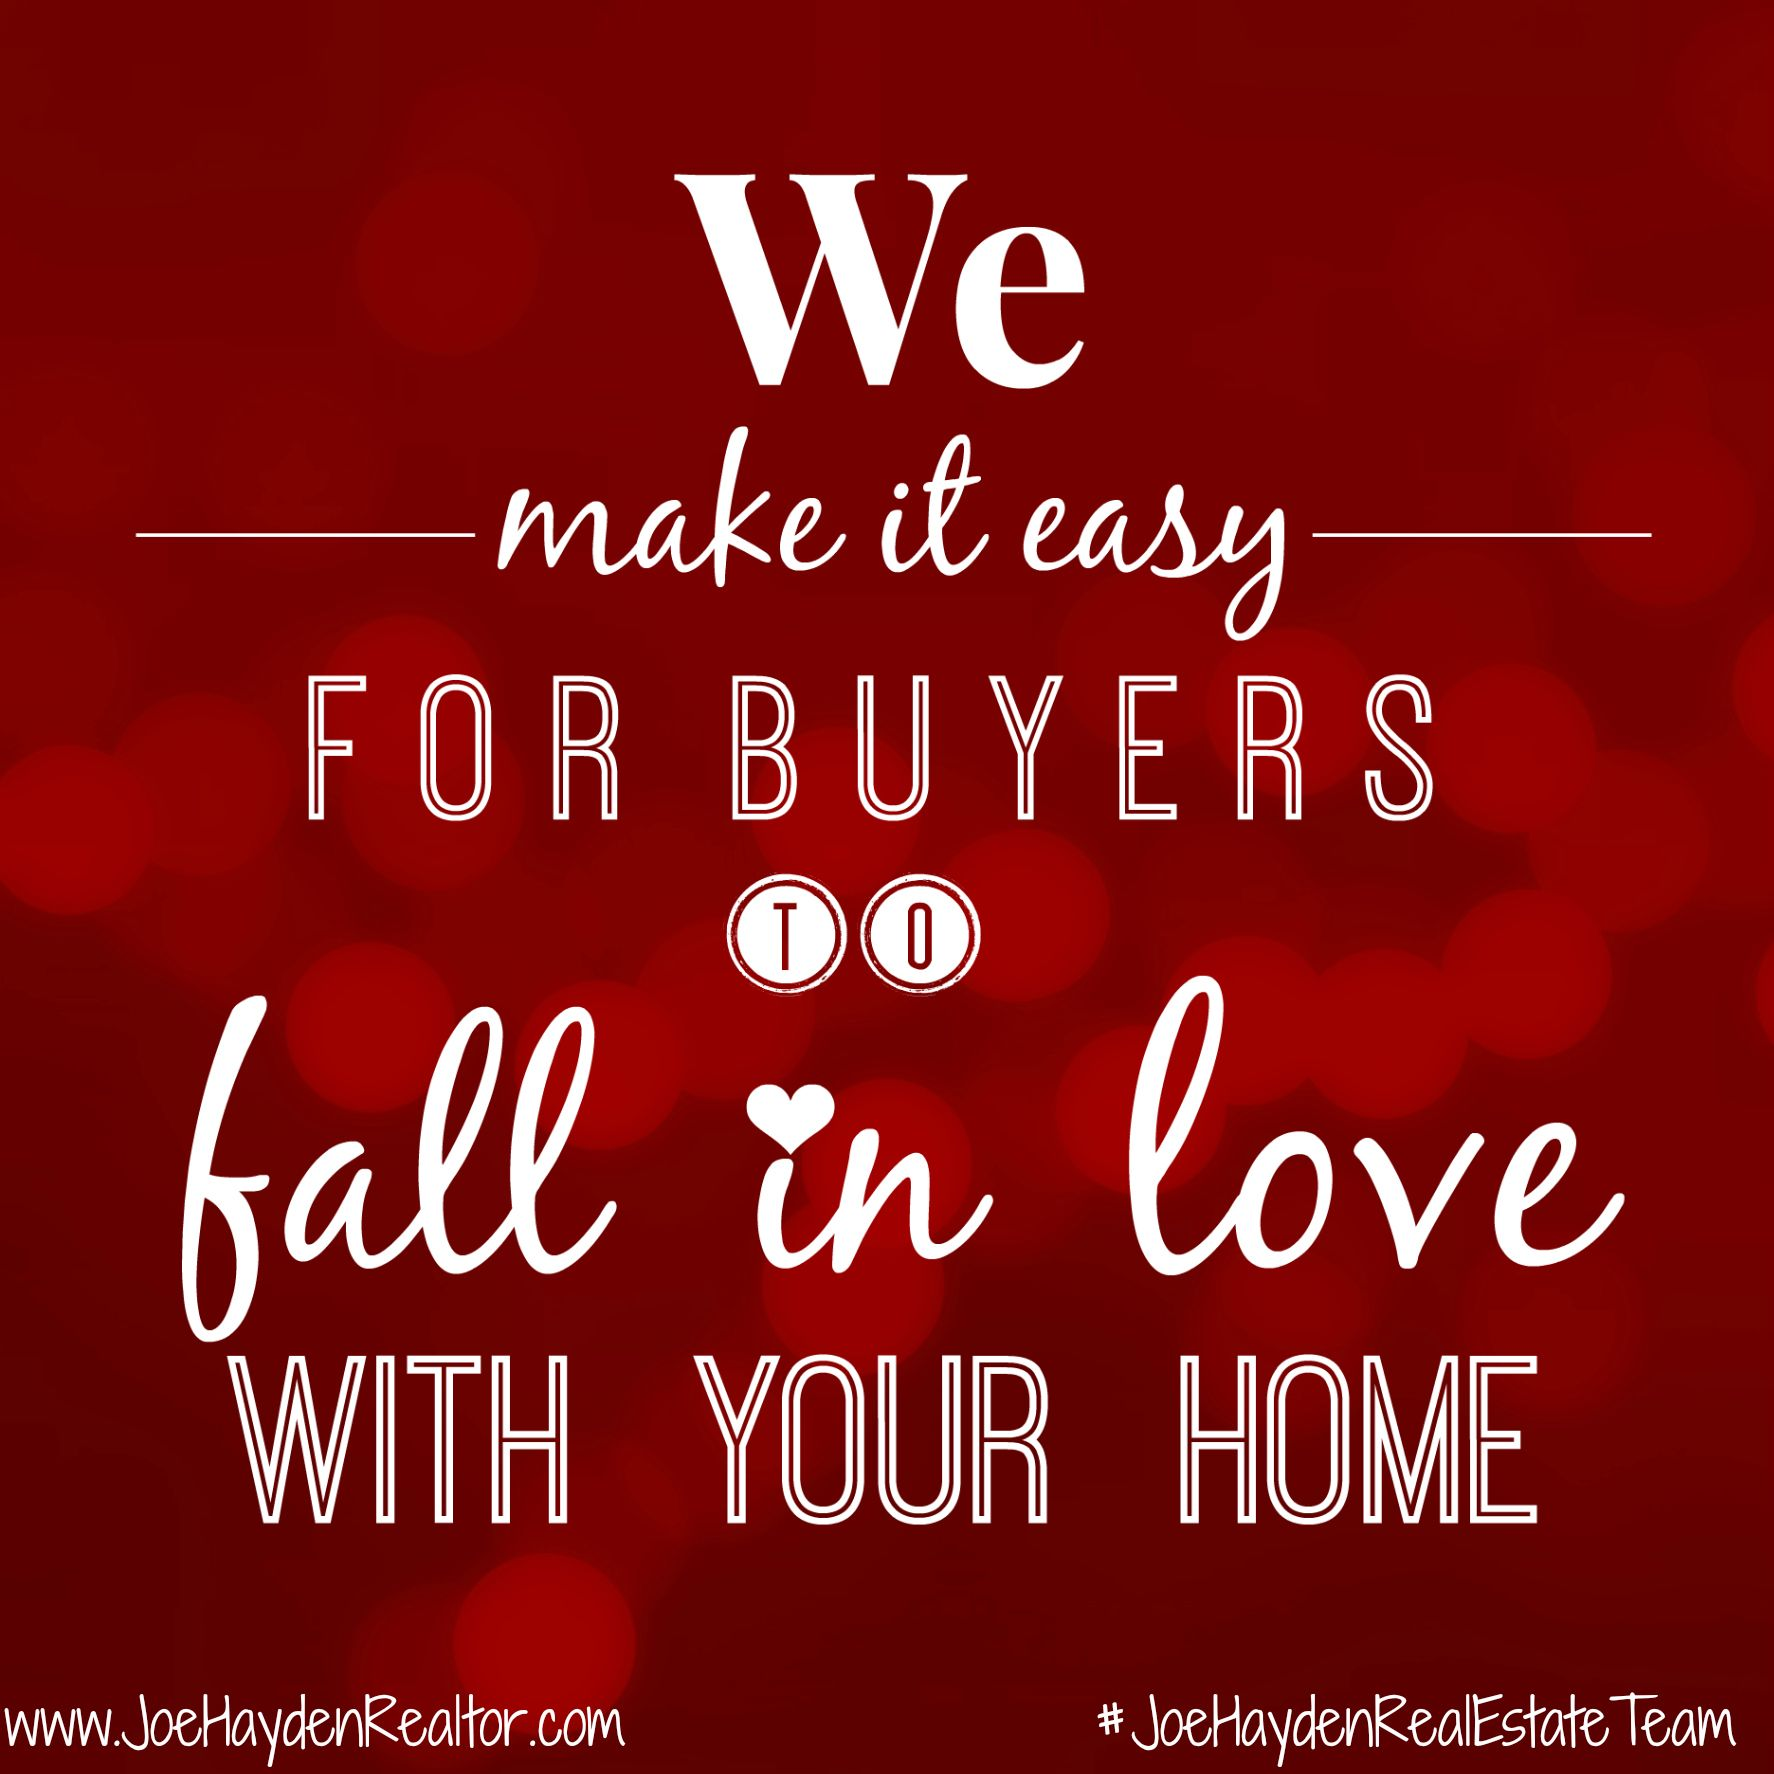 We make it easy for ers to fall in love with your home Joe